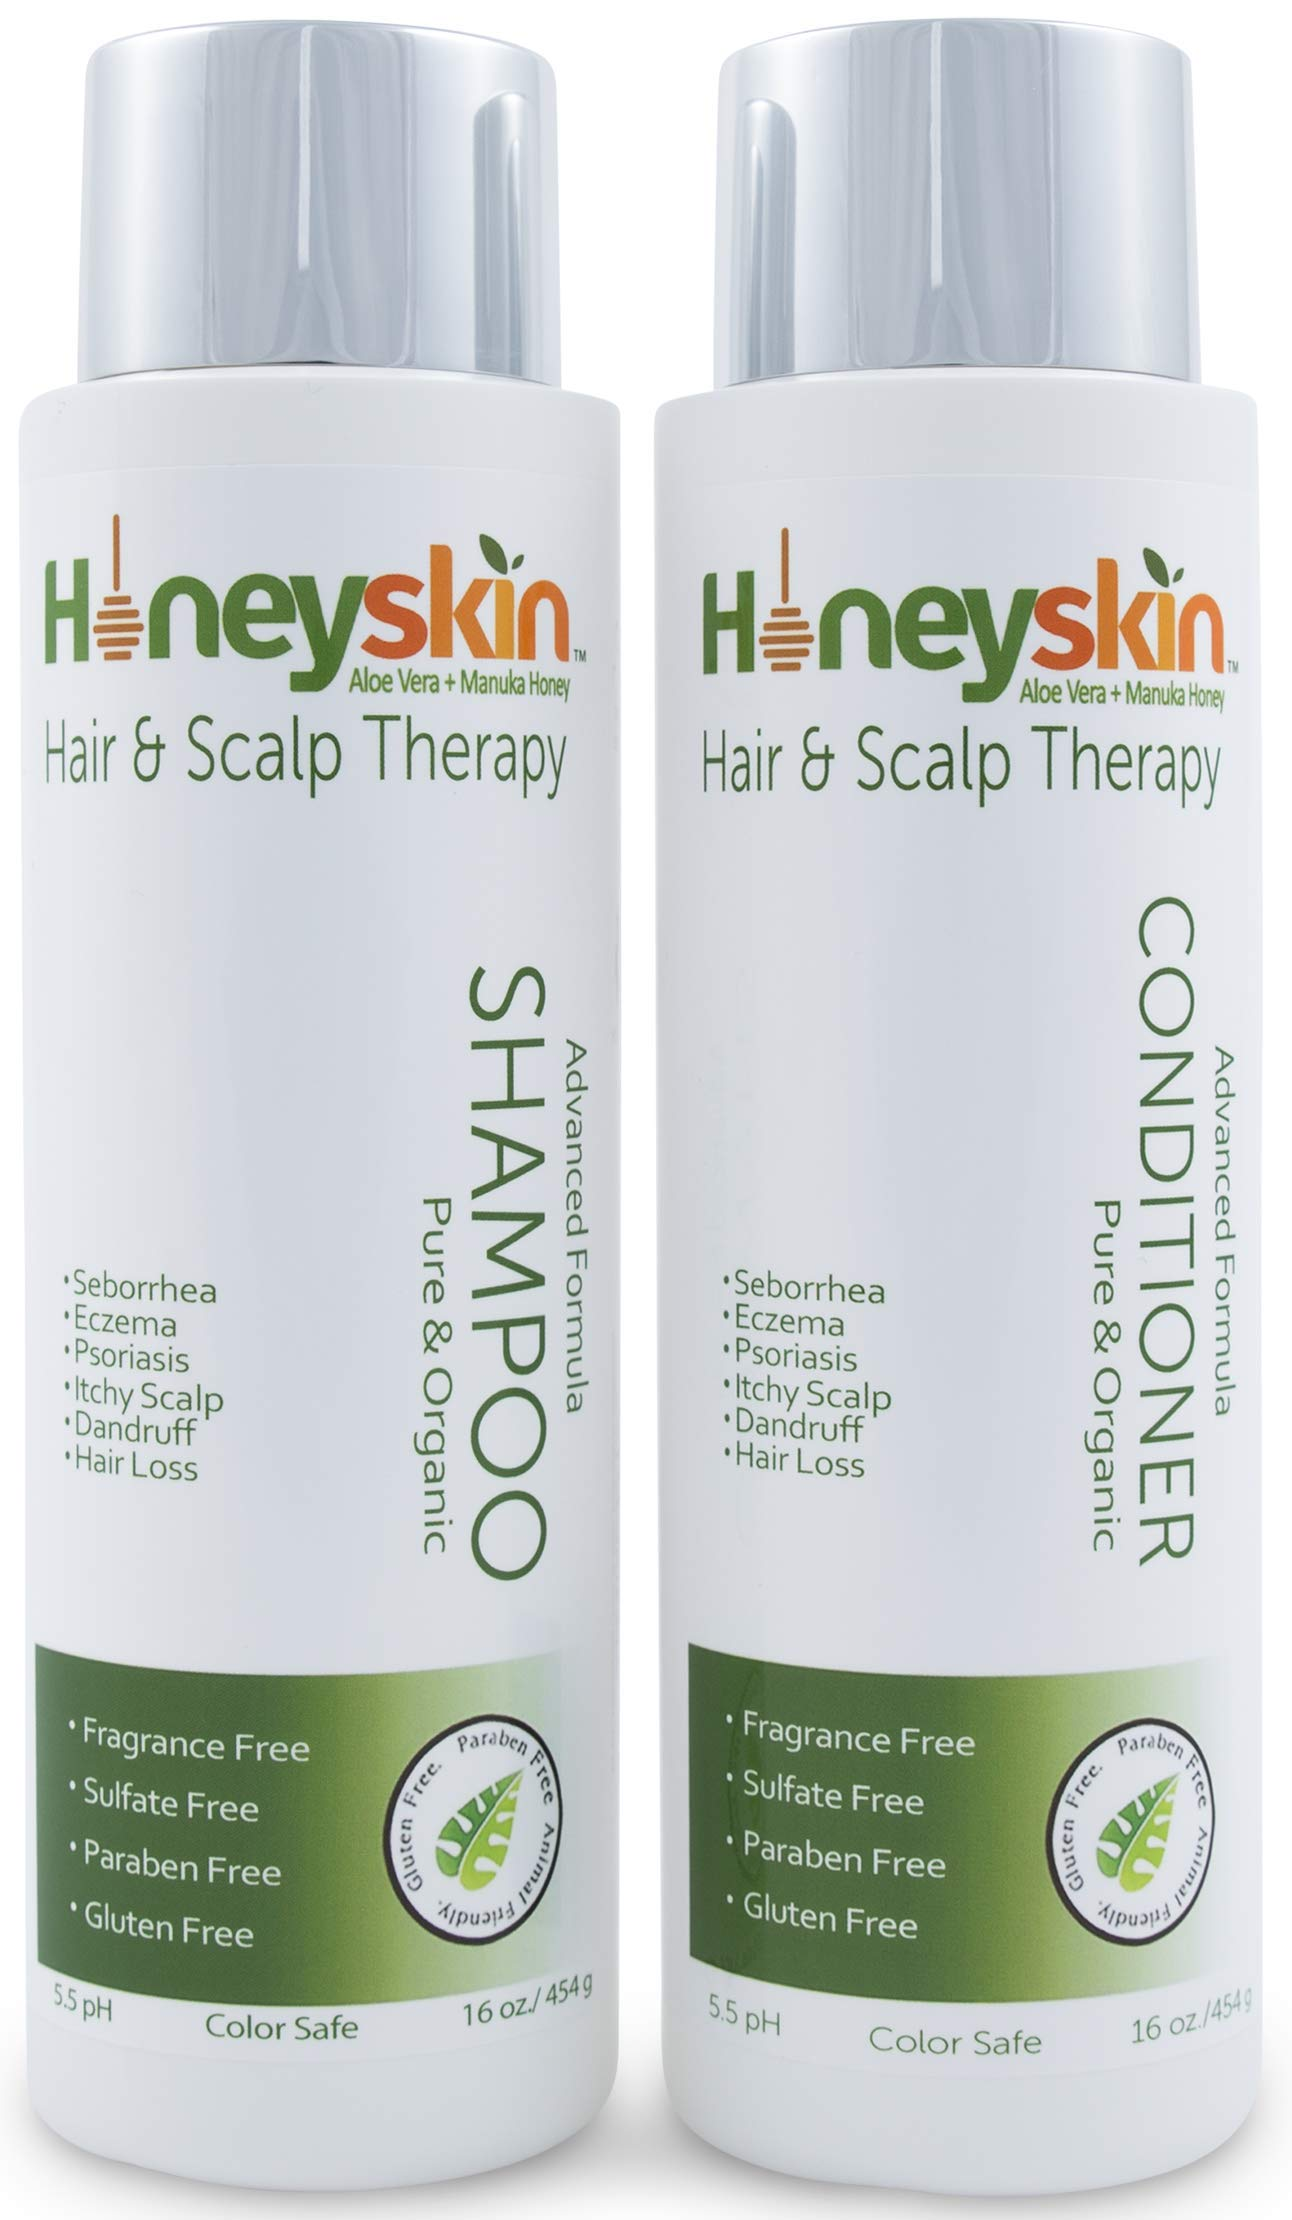 Hair Growth Shampoo and Conditioner Set - with Manuka Honey, Aloe Vera and Coconut Oil - for Frizzy, Itchy and Dry Scalp - Hair Loss and Thinning Treatment - Paraben and Sulfate Free (16oz)